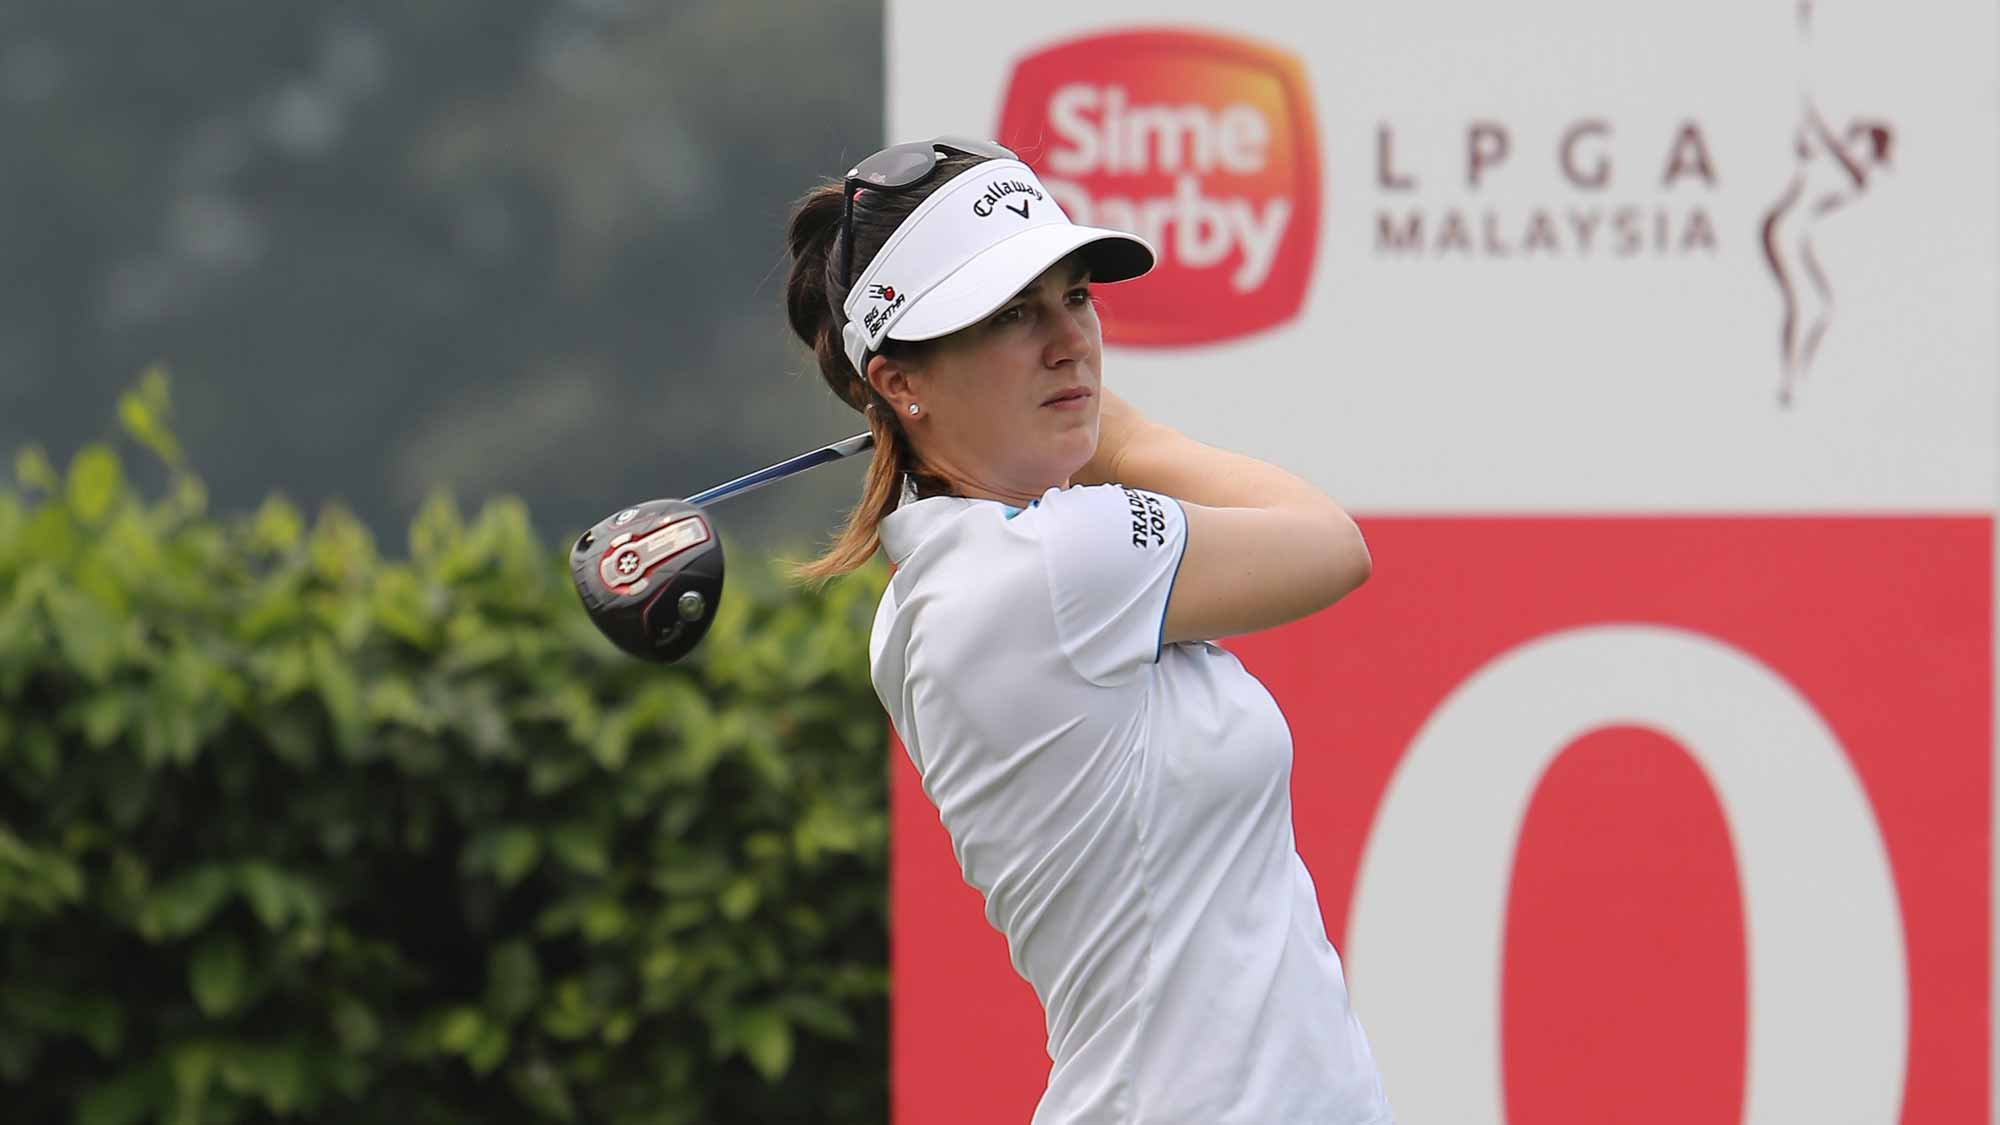 Sandra Gal during her practice round at the 2015 Sime Darby LPGA Malaysia